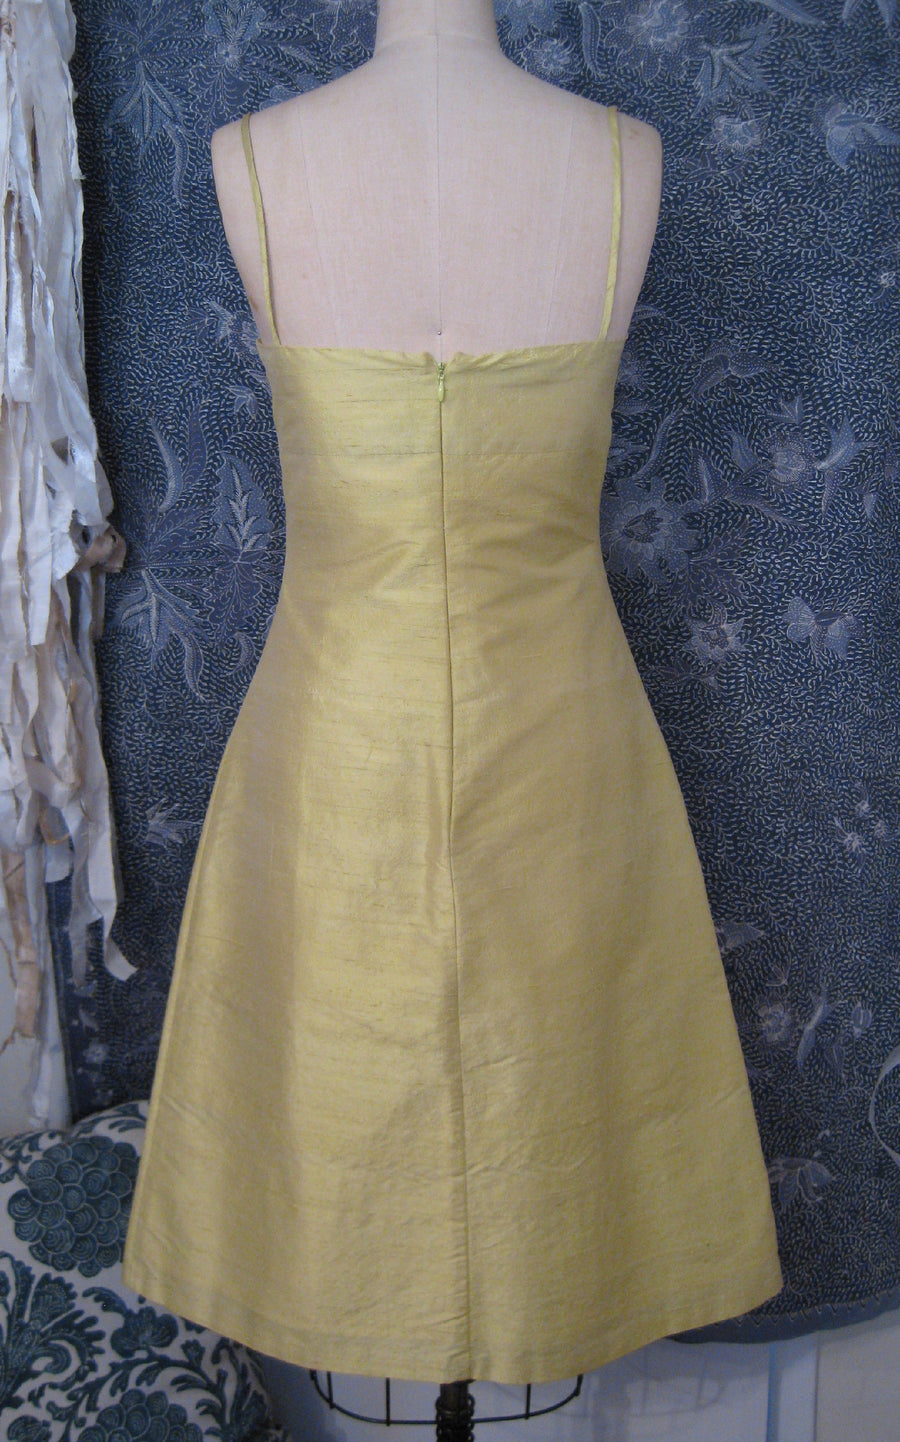 Lemon Shantung A-line Sundress, size X-small